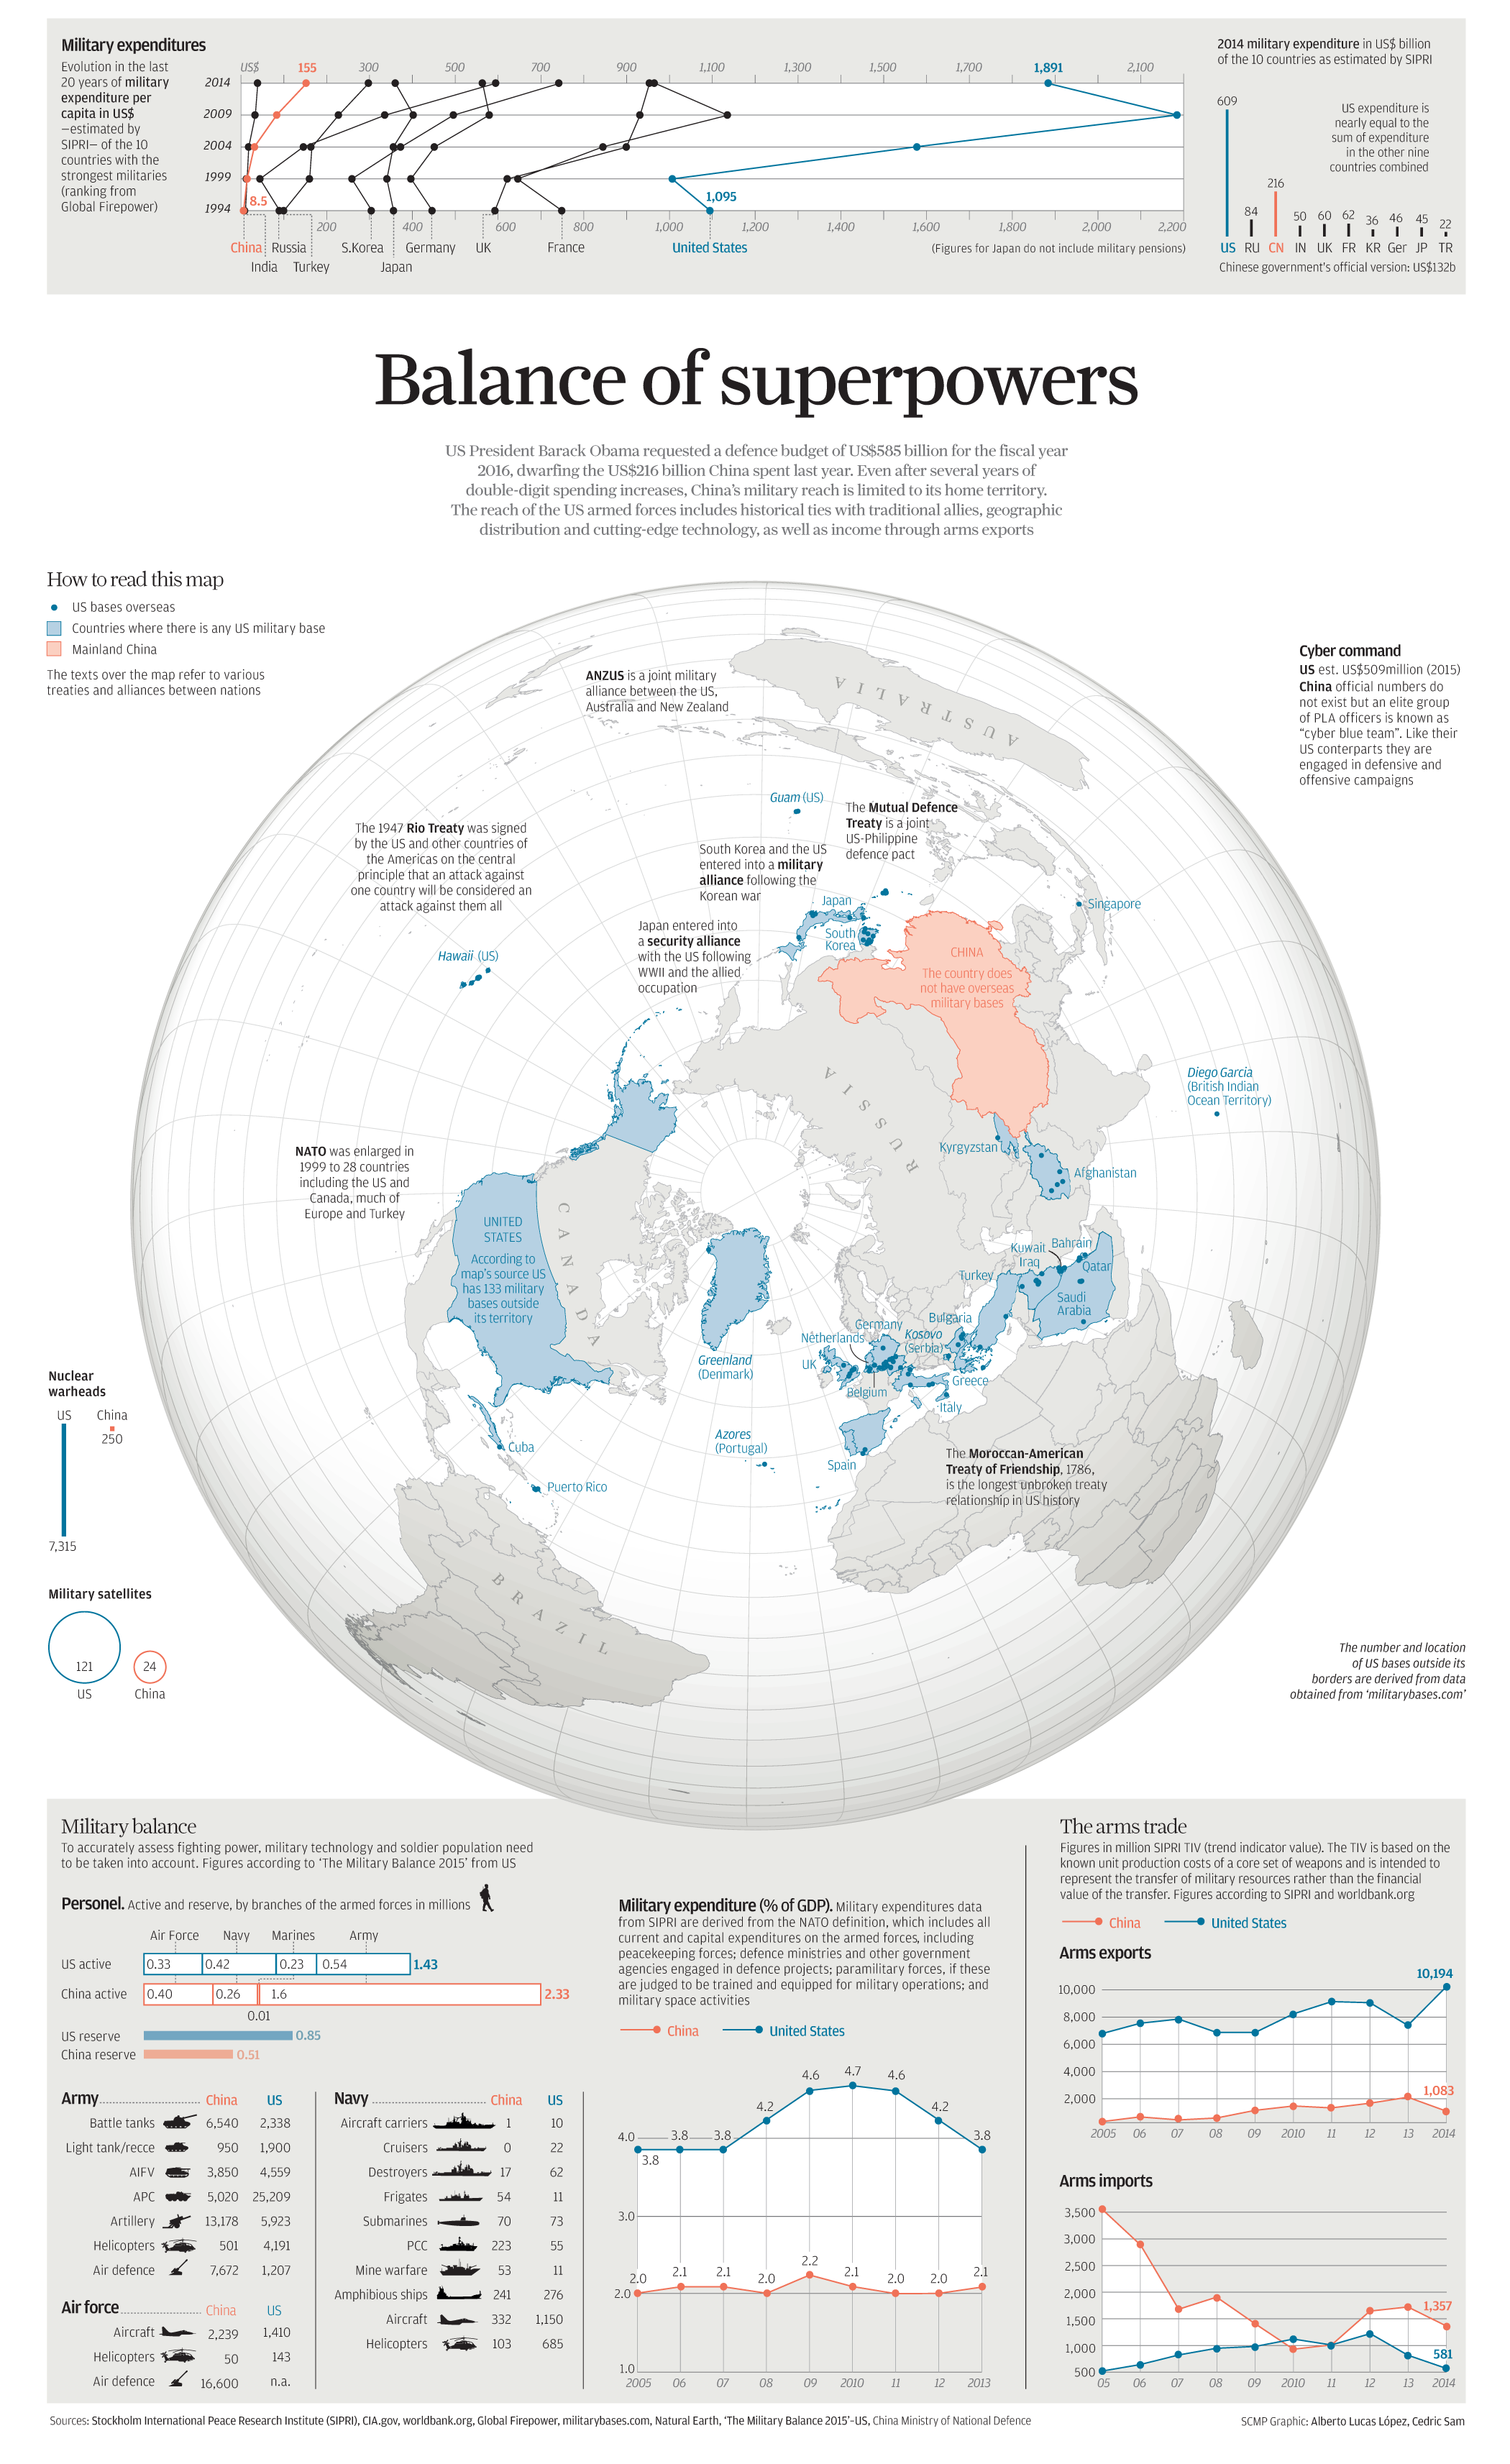 Fromhttp://www.scmp.com/infographics/article/1815609/infographic-balance-superpowers